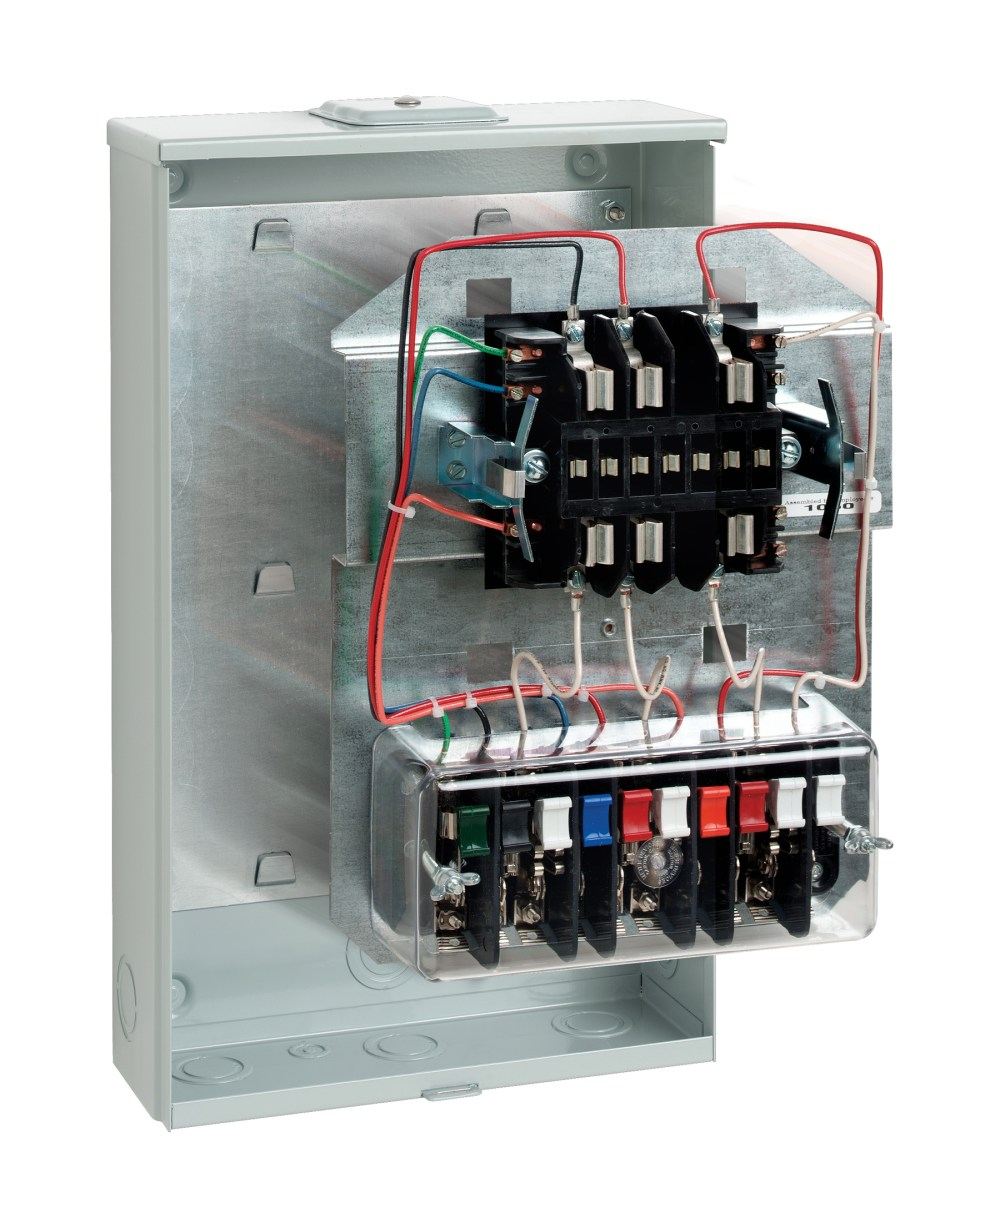 medium resolution of brooks upg snap 2 tm meter panelbrooks upg s snap2 transformer rated meter panel reduces installation time from hours to a matter of minutes